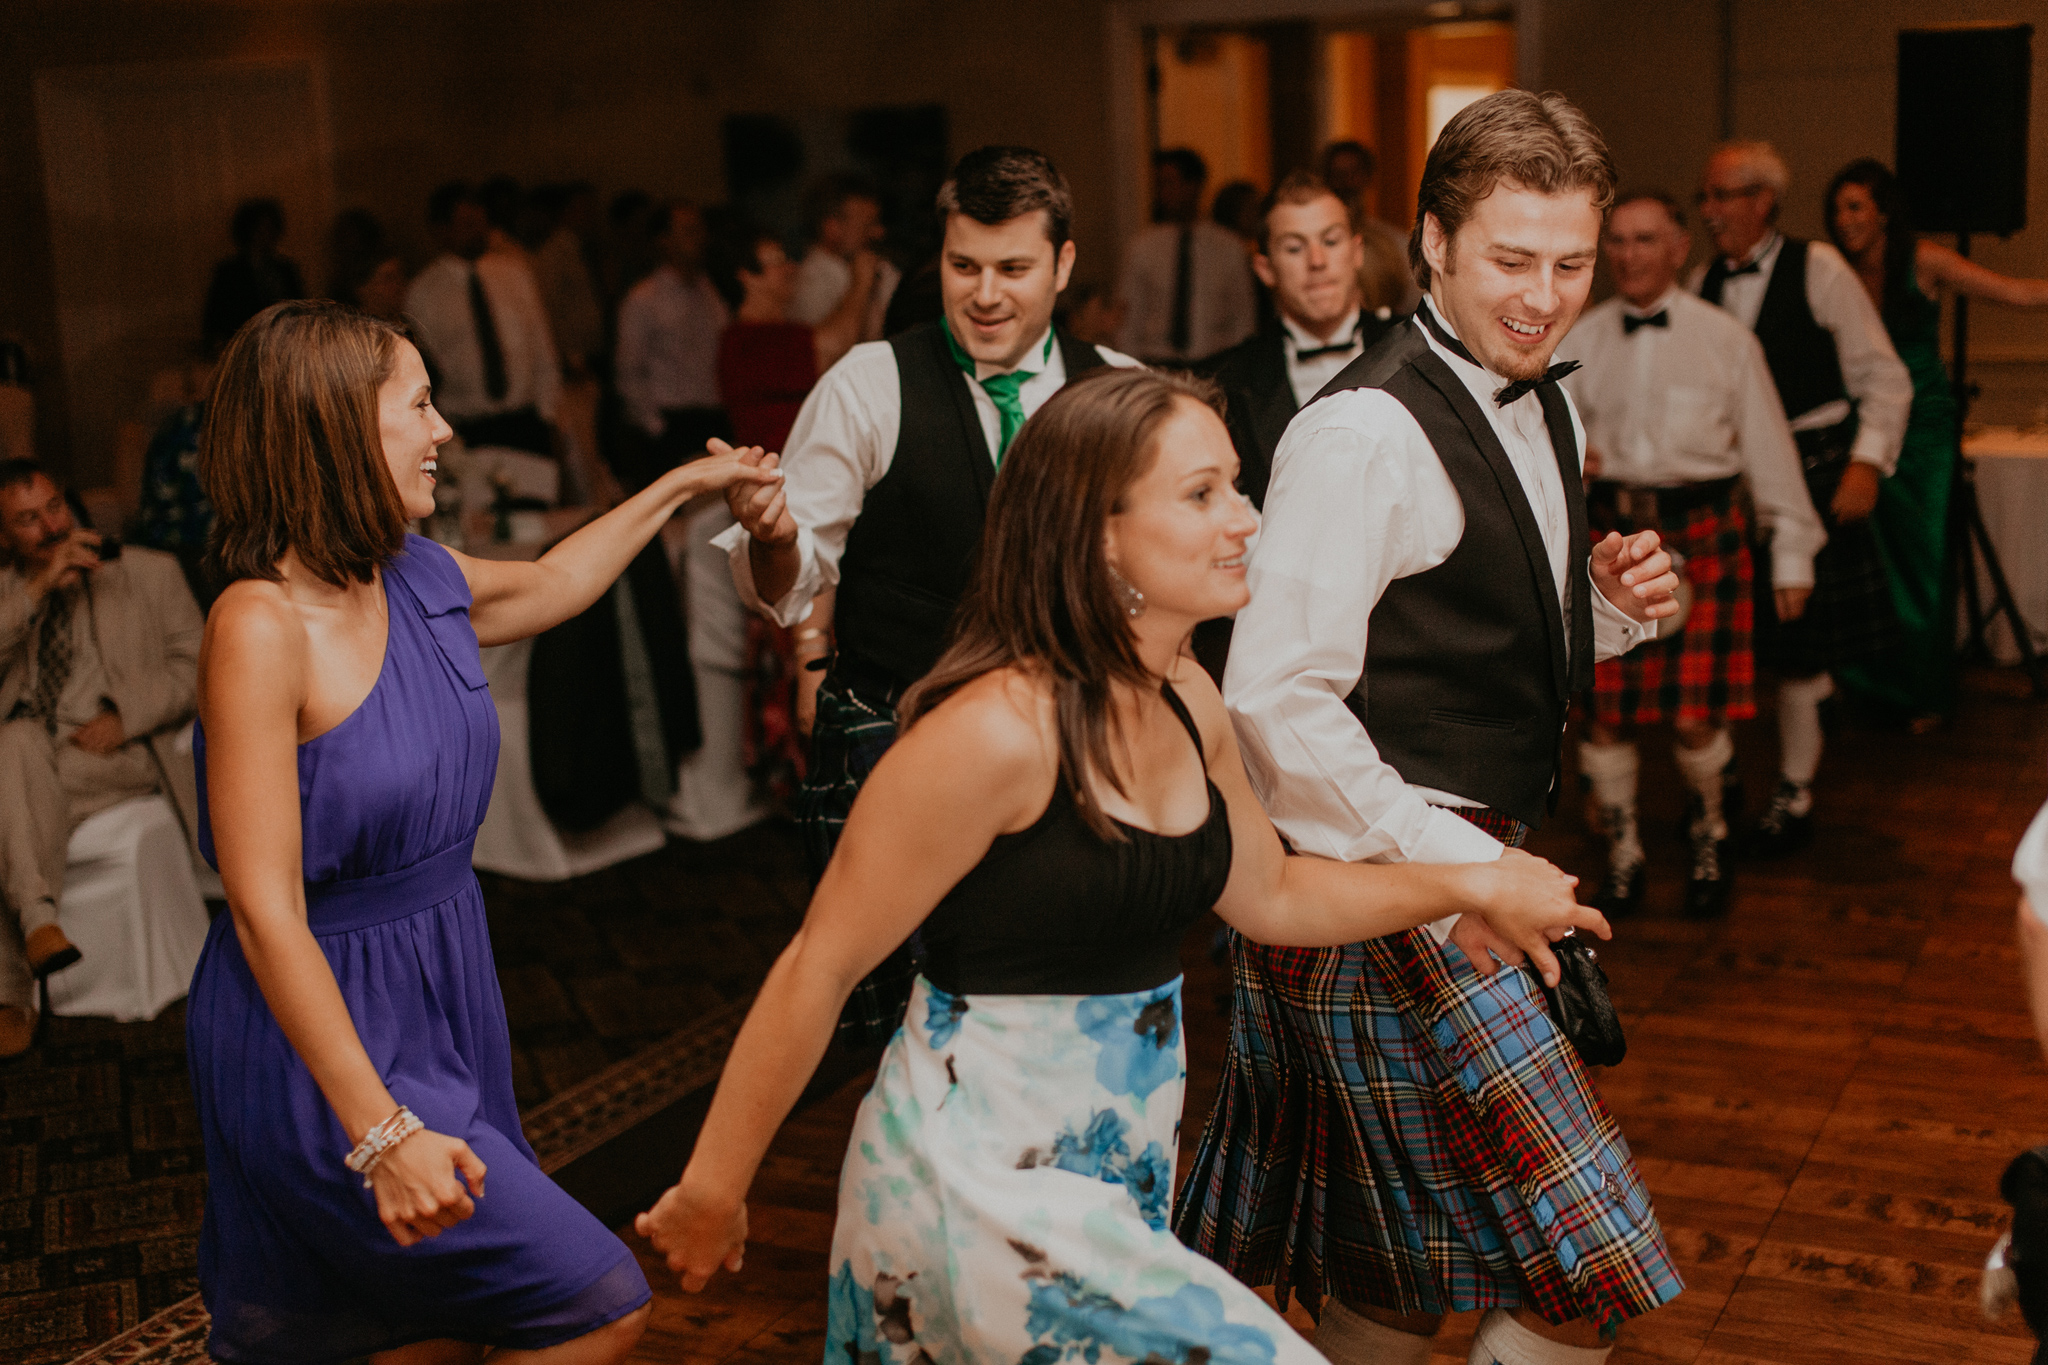 Guests dance in kilts at wedding reception candid documentary wedding photography